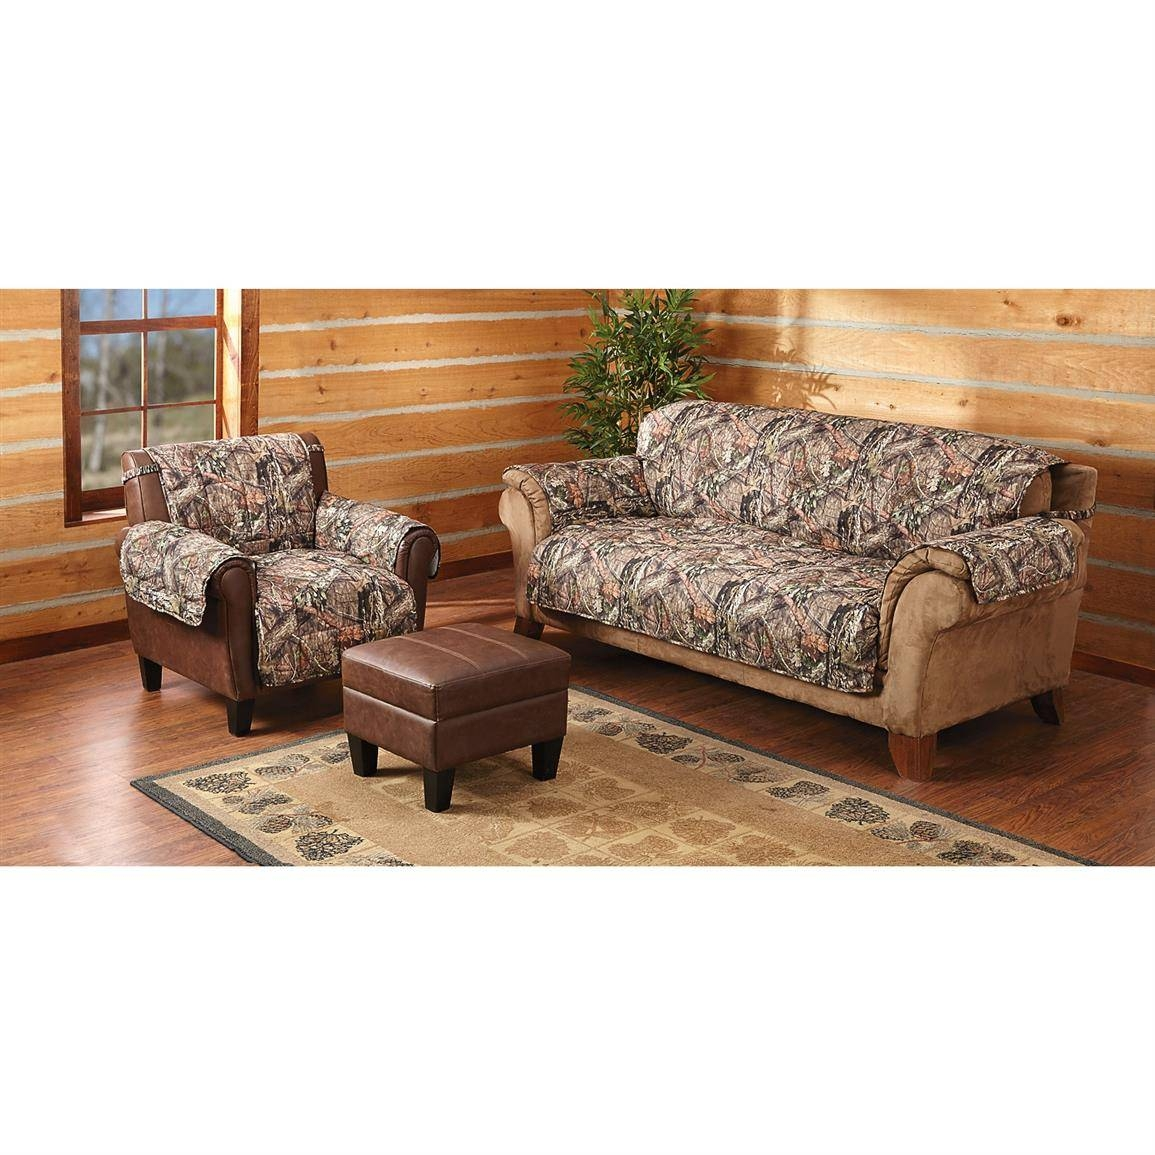 Mossy Oak Camo Furniture Covers - 647980, Furniture Covers At with Camo Sofa Cover (Image 16 of 30)